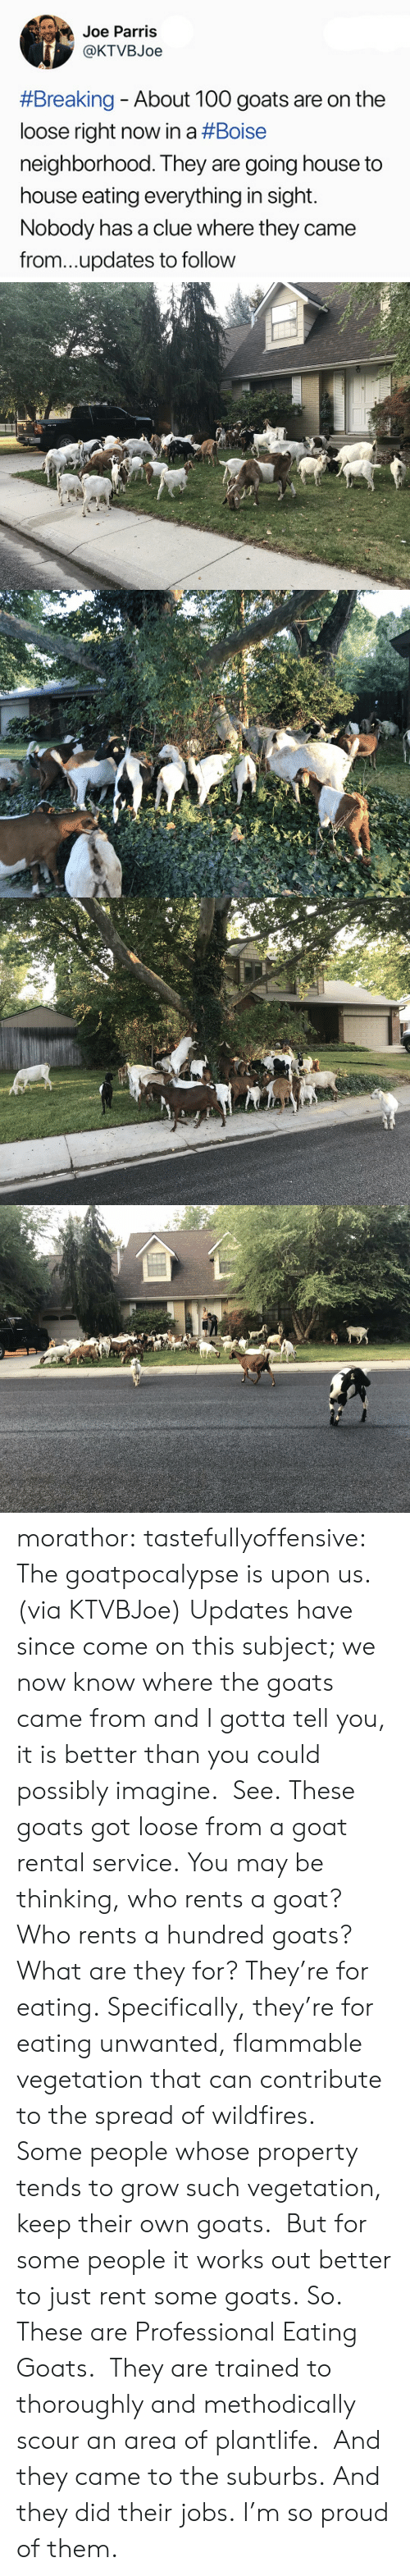 Tumblr, Twitter, and Goat: Joe Parris  @KTVBJoe  #Breaking-About 100 goats are on the  loose right now in a #Boise  neighborhood. They are going house to  house eating everything in sight.  Nobody has a clue where they came  from...updates to follow morathor: tastefullyoffensive: The goatpocalypse is upon us. (via KTVBJoe) Updates have since come on this subject; we now know where the goats came from and I gotta tell you, it is better than you could possibly imagine. See. These goats got loose from a goat rental service. You may be thinking, who rents a goat? Who rents a hundred goats? What are they for? They're for eating. Specifically, they're for eating unwanted, flammable vegetation that can contribute to the spread of wildfires. Some people whose property tends to grow such vegetation, keep their own goats. But for some people it works out better to just rent some goats. So. These are Professional Eating Goats. They are trained to thoroughly and methodically scour an area of plantlife. And they came to the suburbs. And they did their jobs. I'm so proud of them.